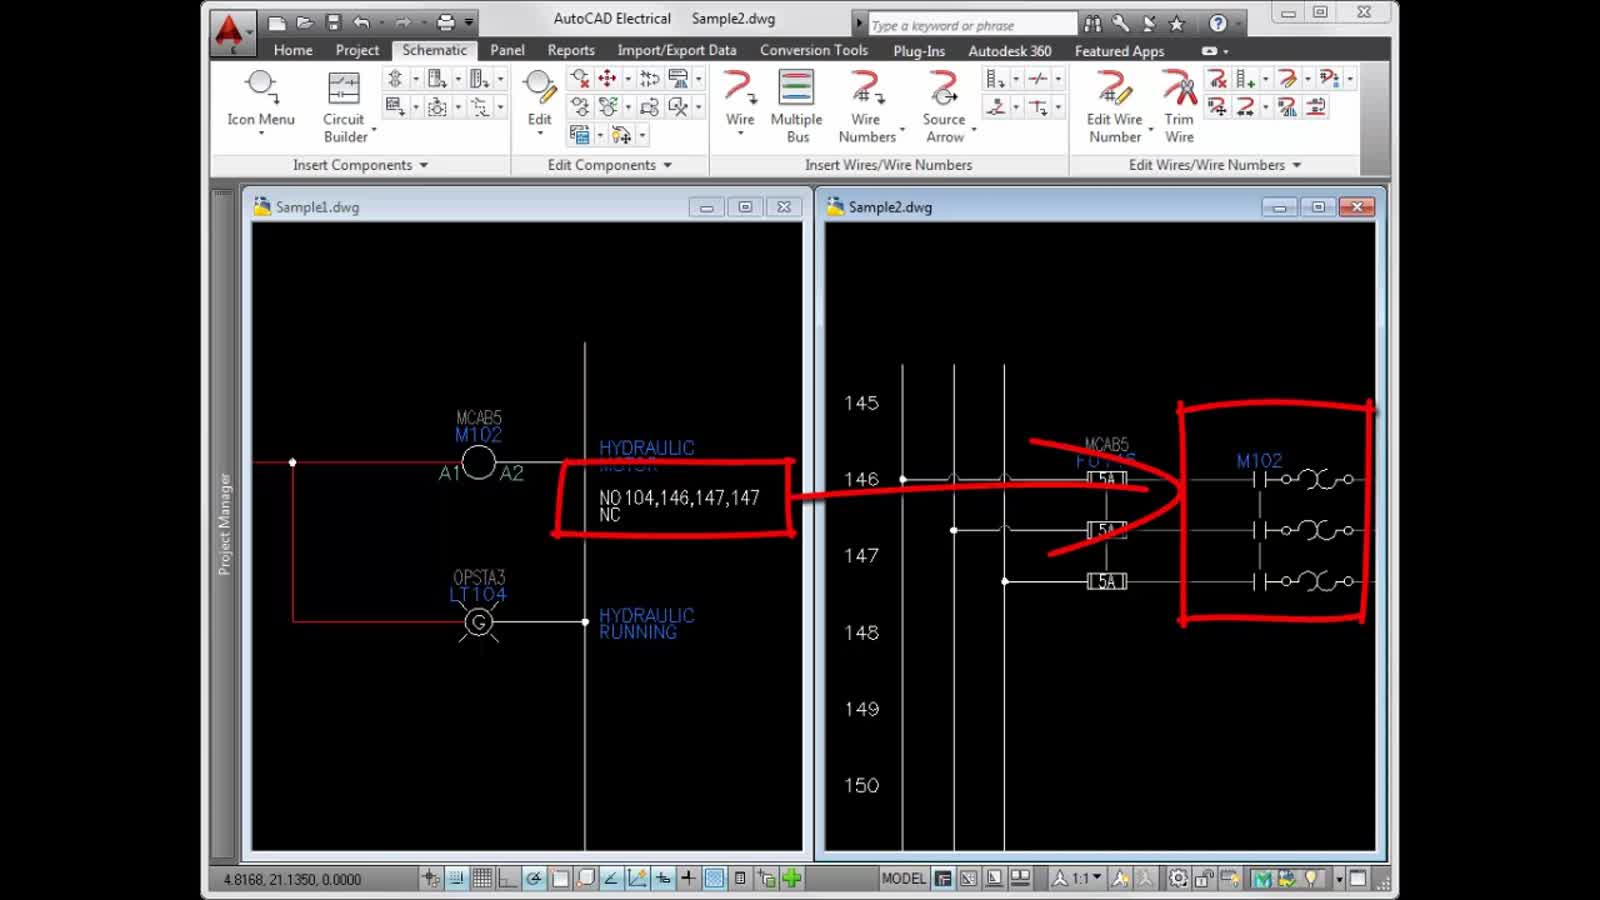 Autocad Electrical 2018 Help Schematic Creation Part 2 Video Wiring Basics